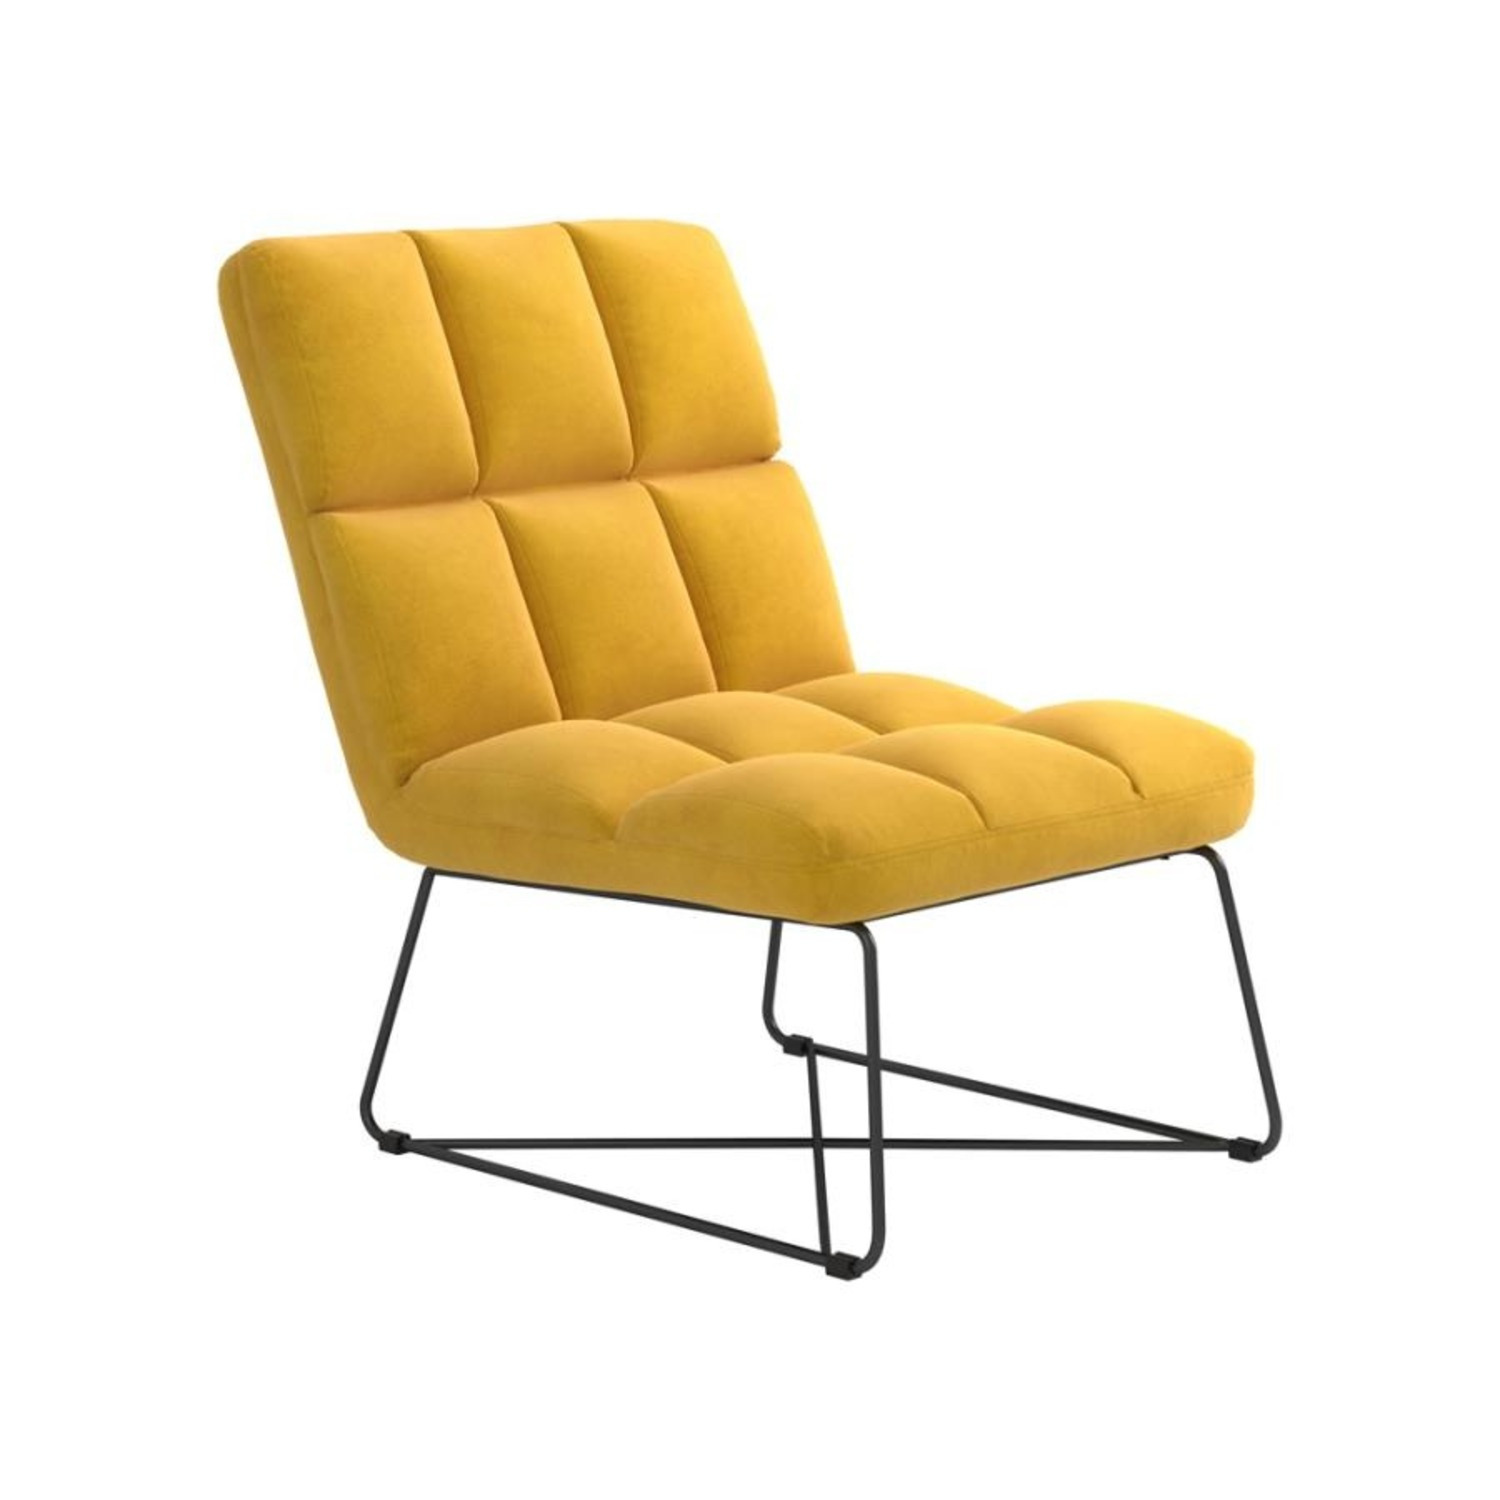 Accent Chair In Burnt Yellow Fabric & Grid Details - image-0